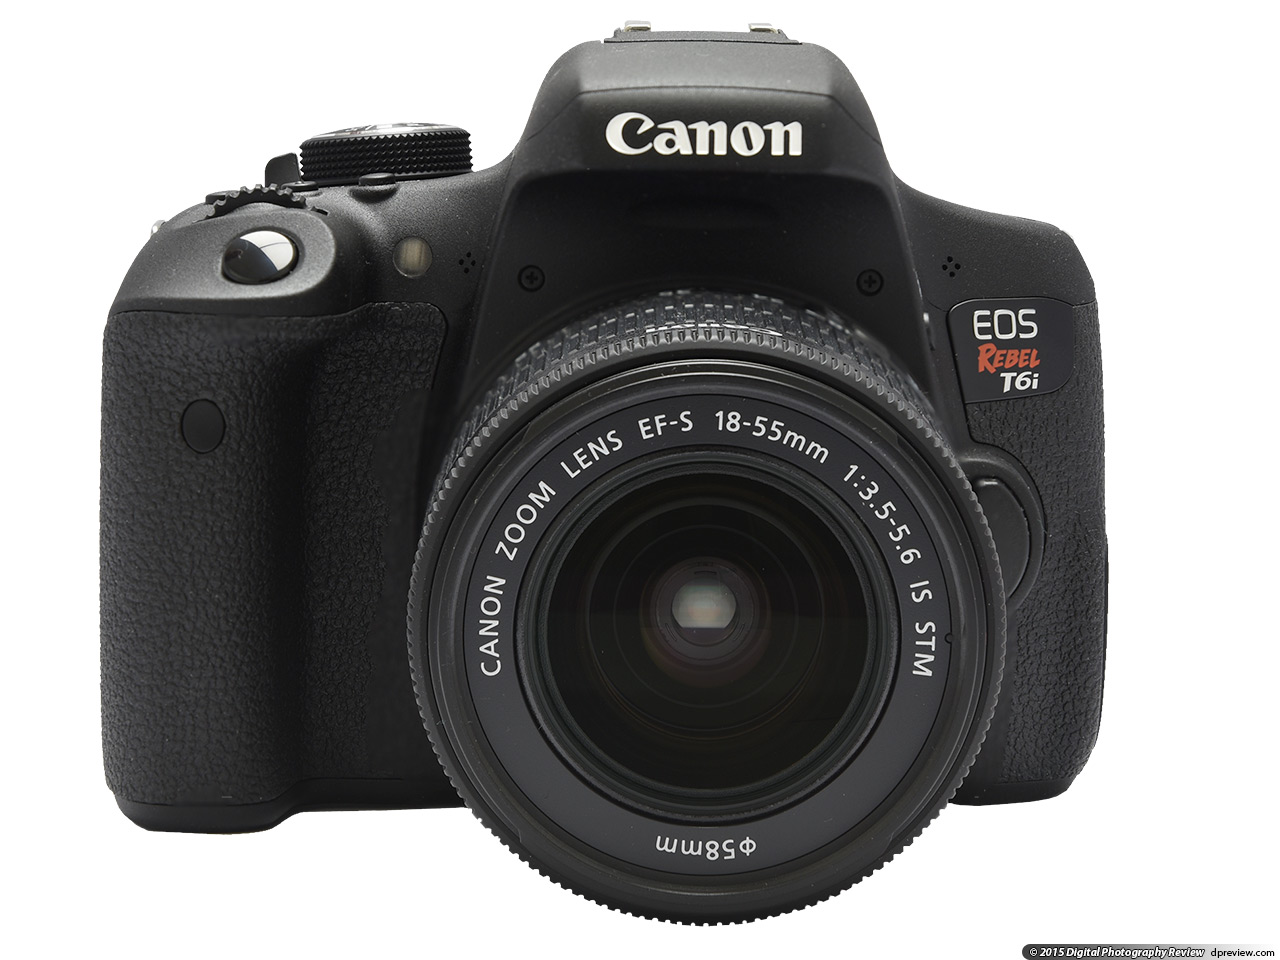 640d933324e70f Canon EOS Rebel T6i Review  Digital Photography Review